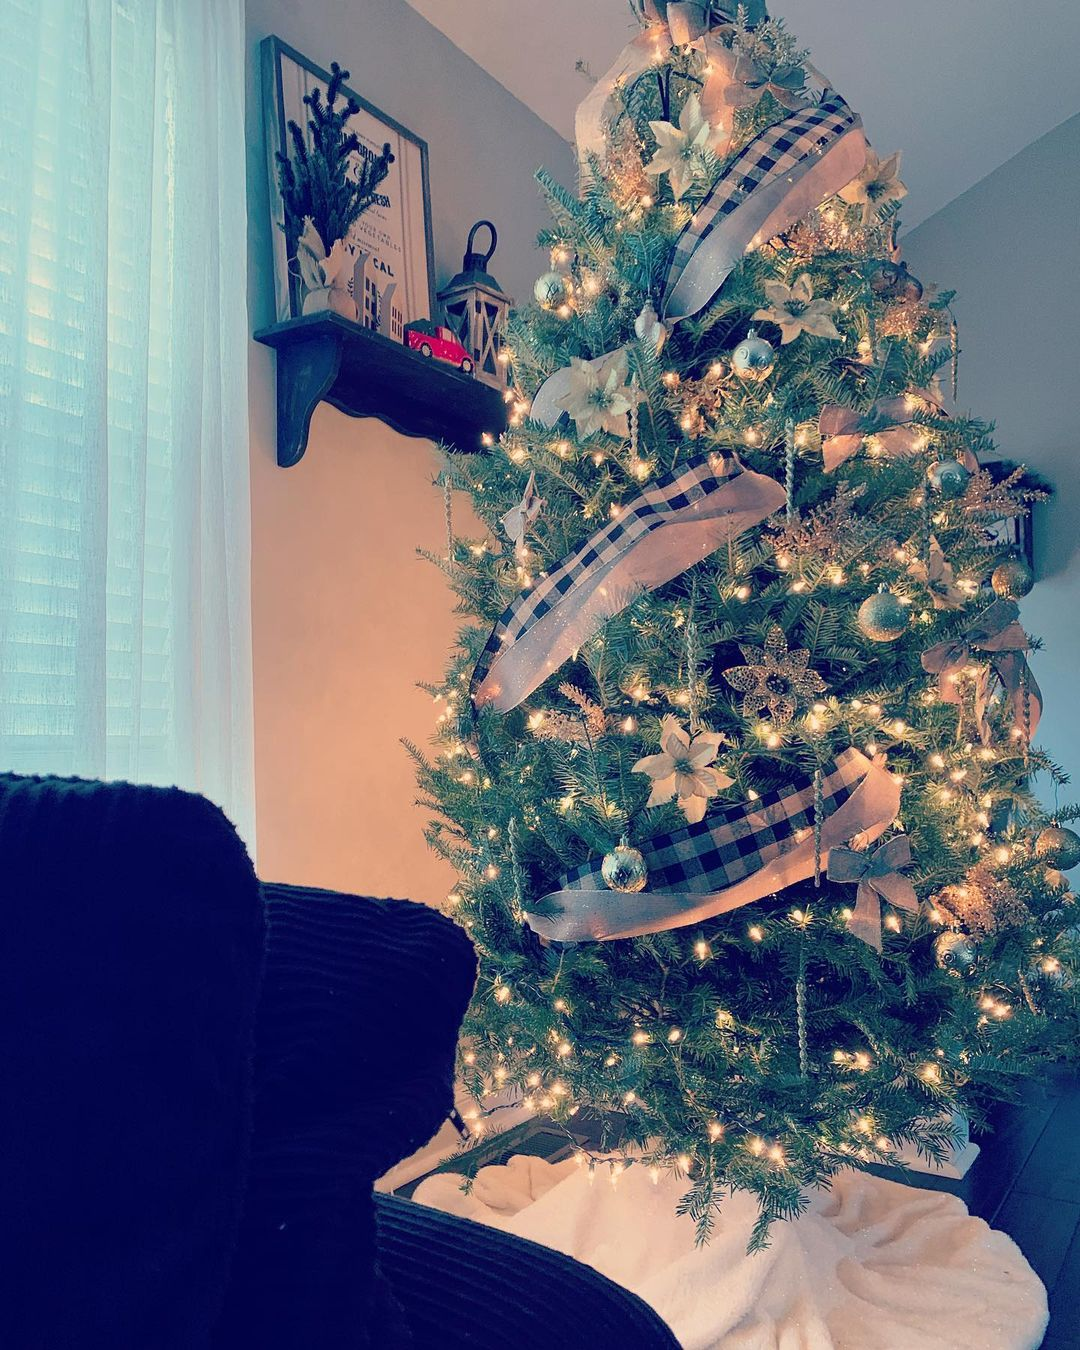 LBI Got my tree up today and it's finally starting to feel like Christmas in our hou…